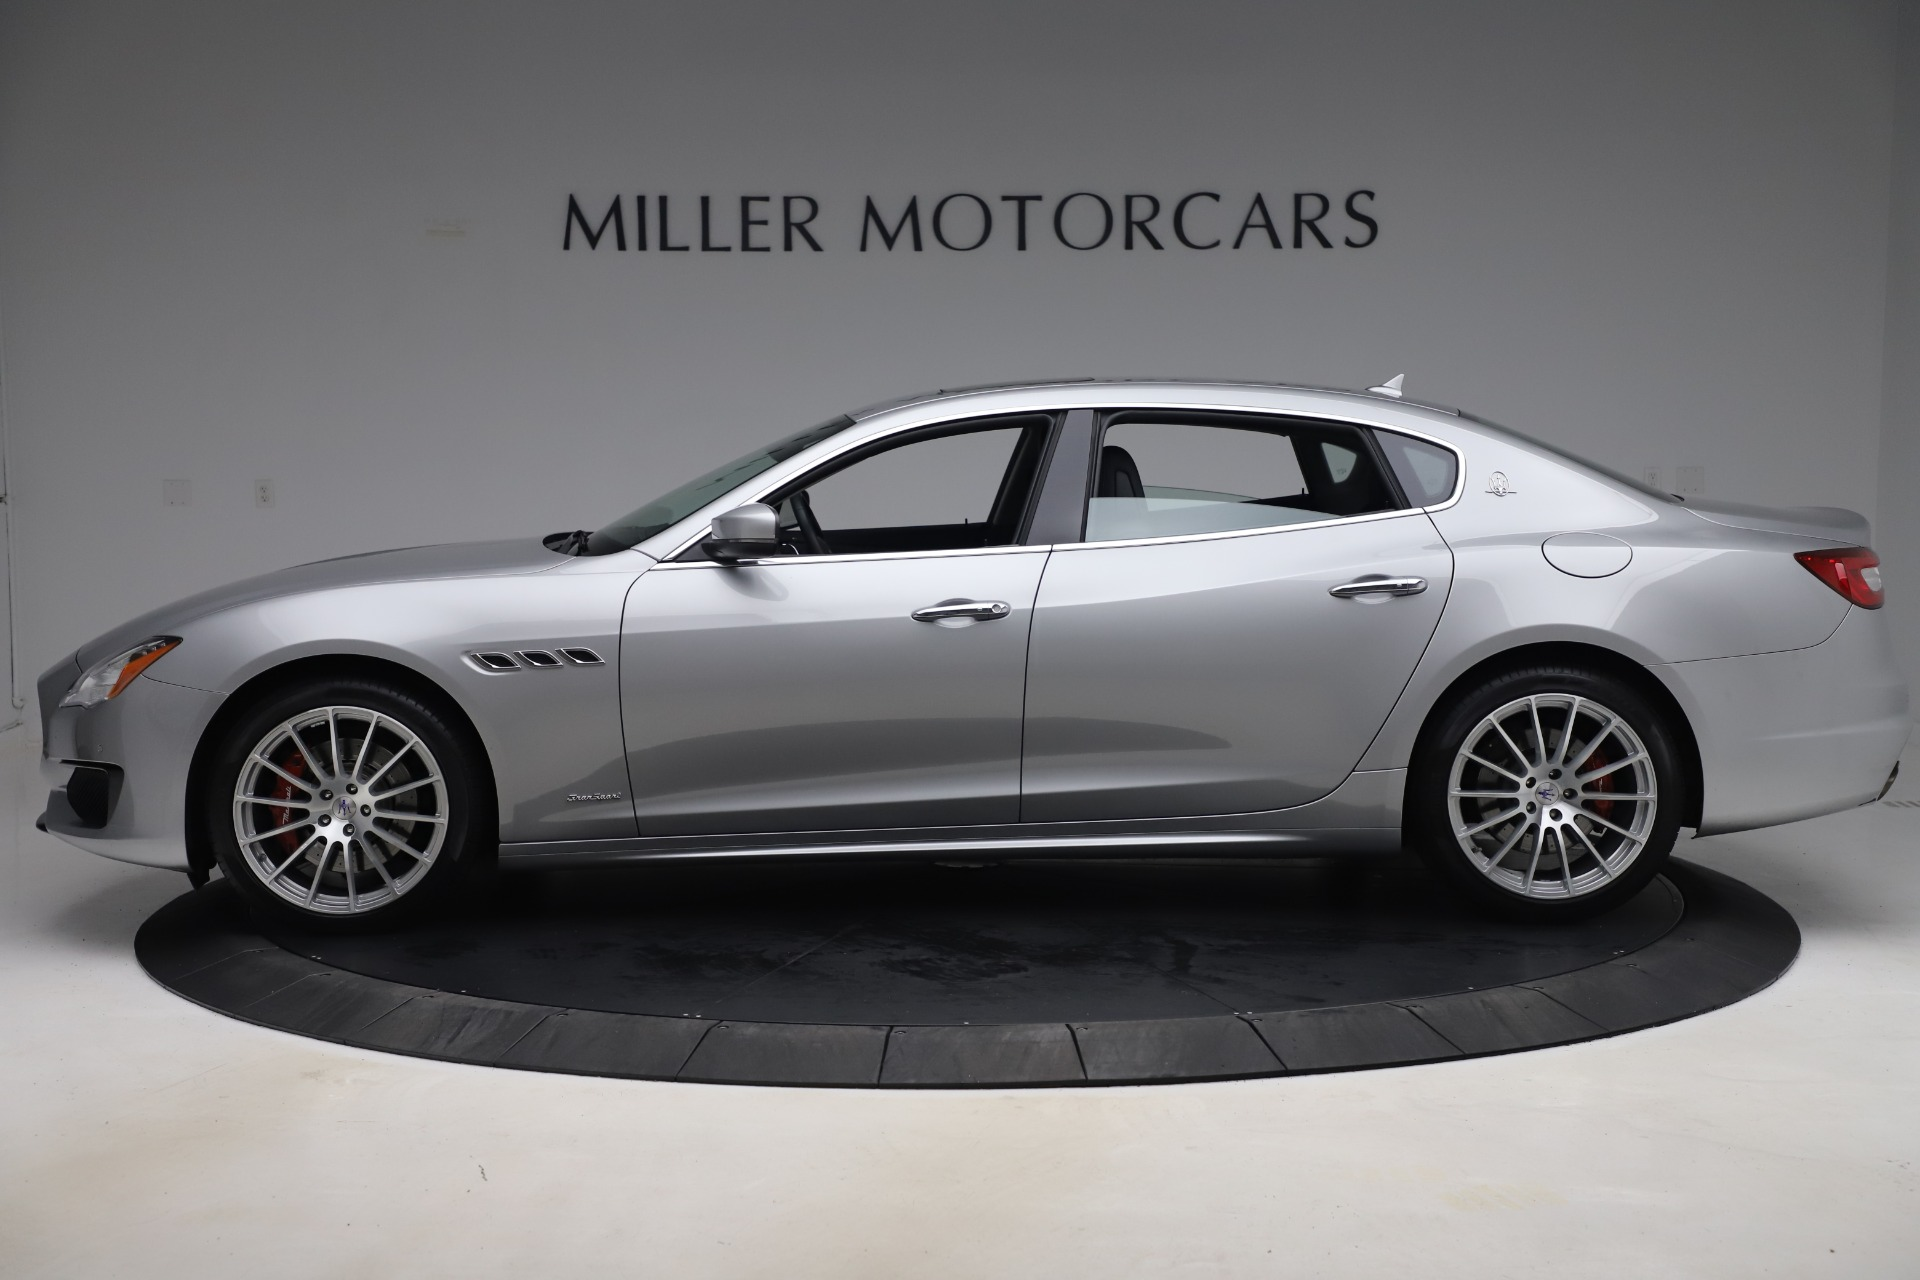 New 2017 Maserati Quattroporte S Q4 GranSport For Sale In Westport, CT 693_p3